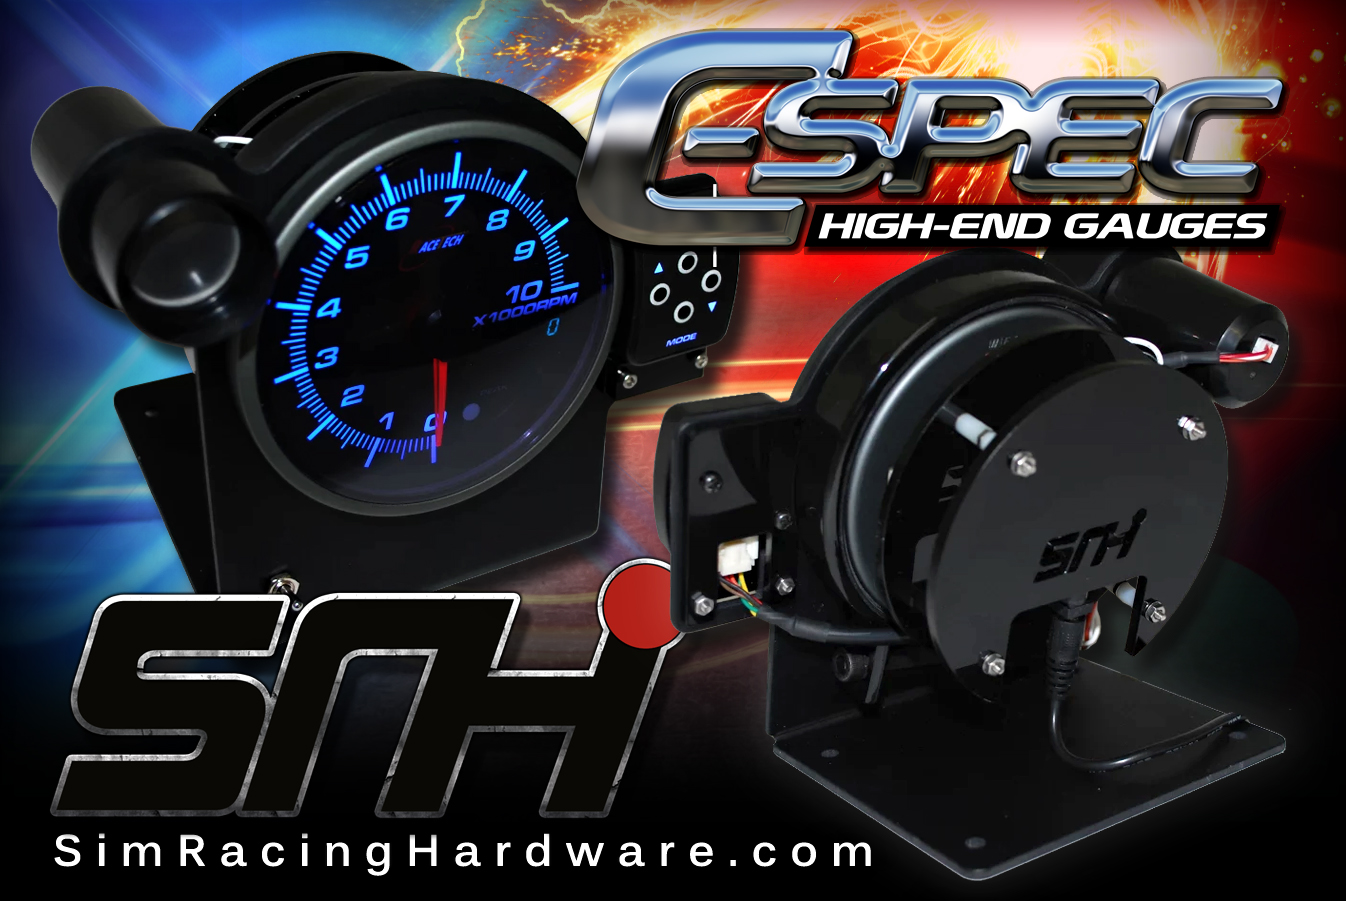 Welcome to SRH - Sim Racing HardwareSim Racing Hardware